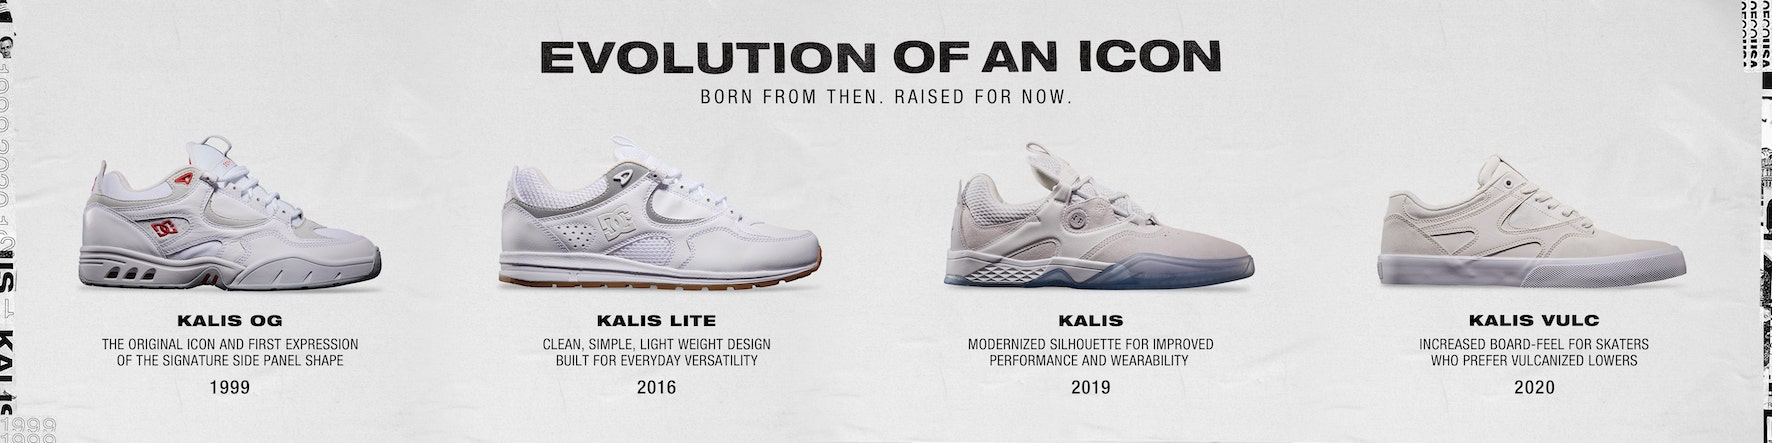 The evolution of the DC Shoes Kalis Vulc